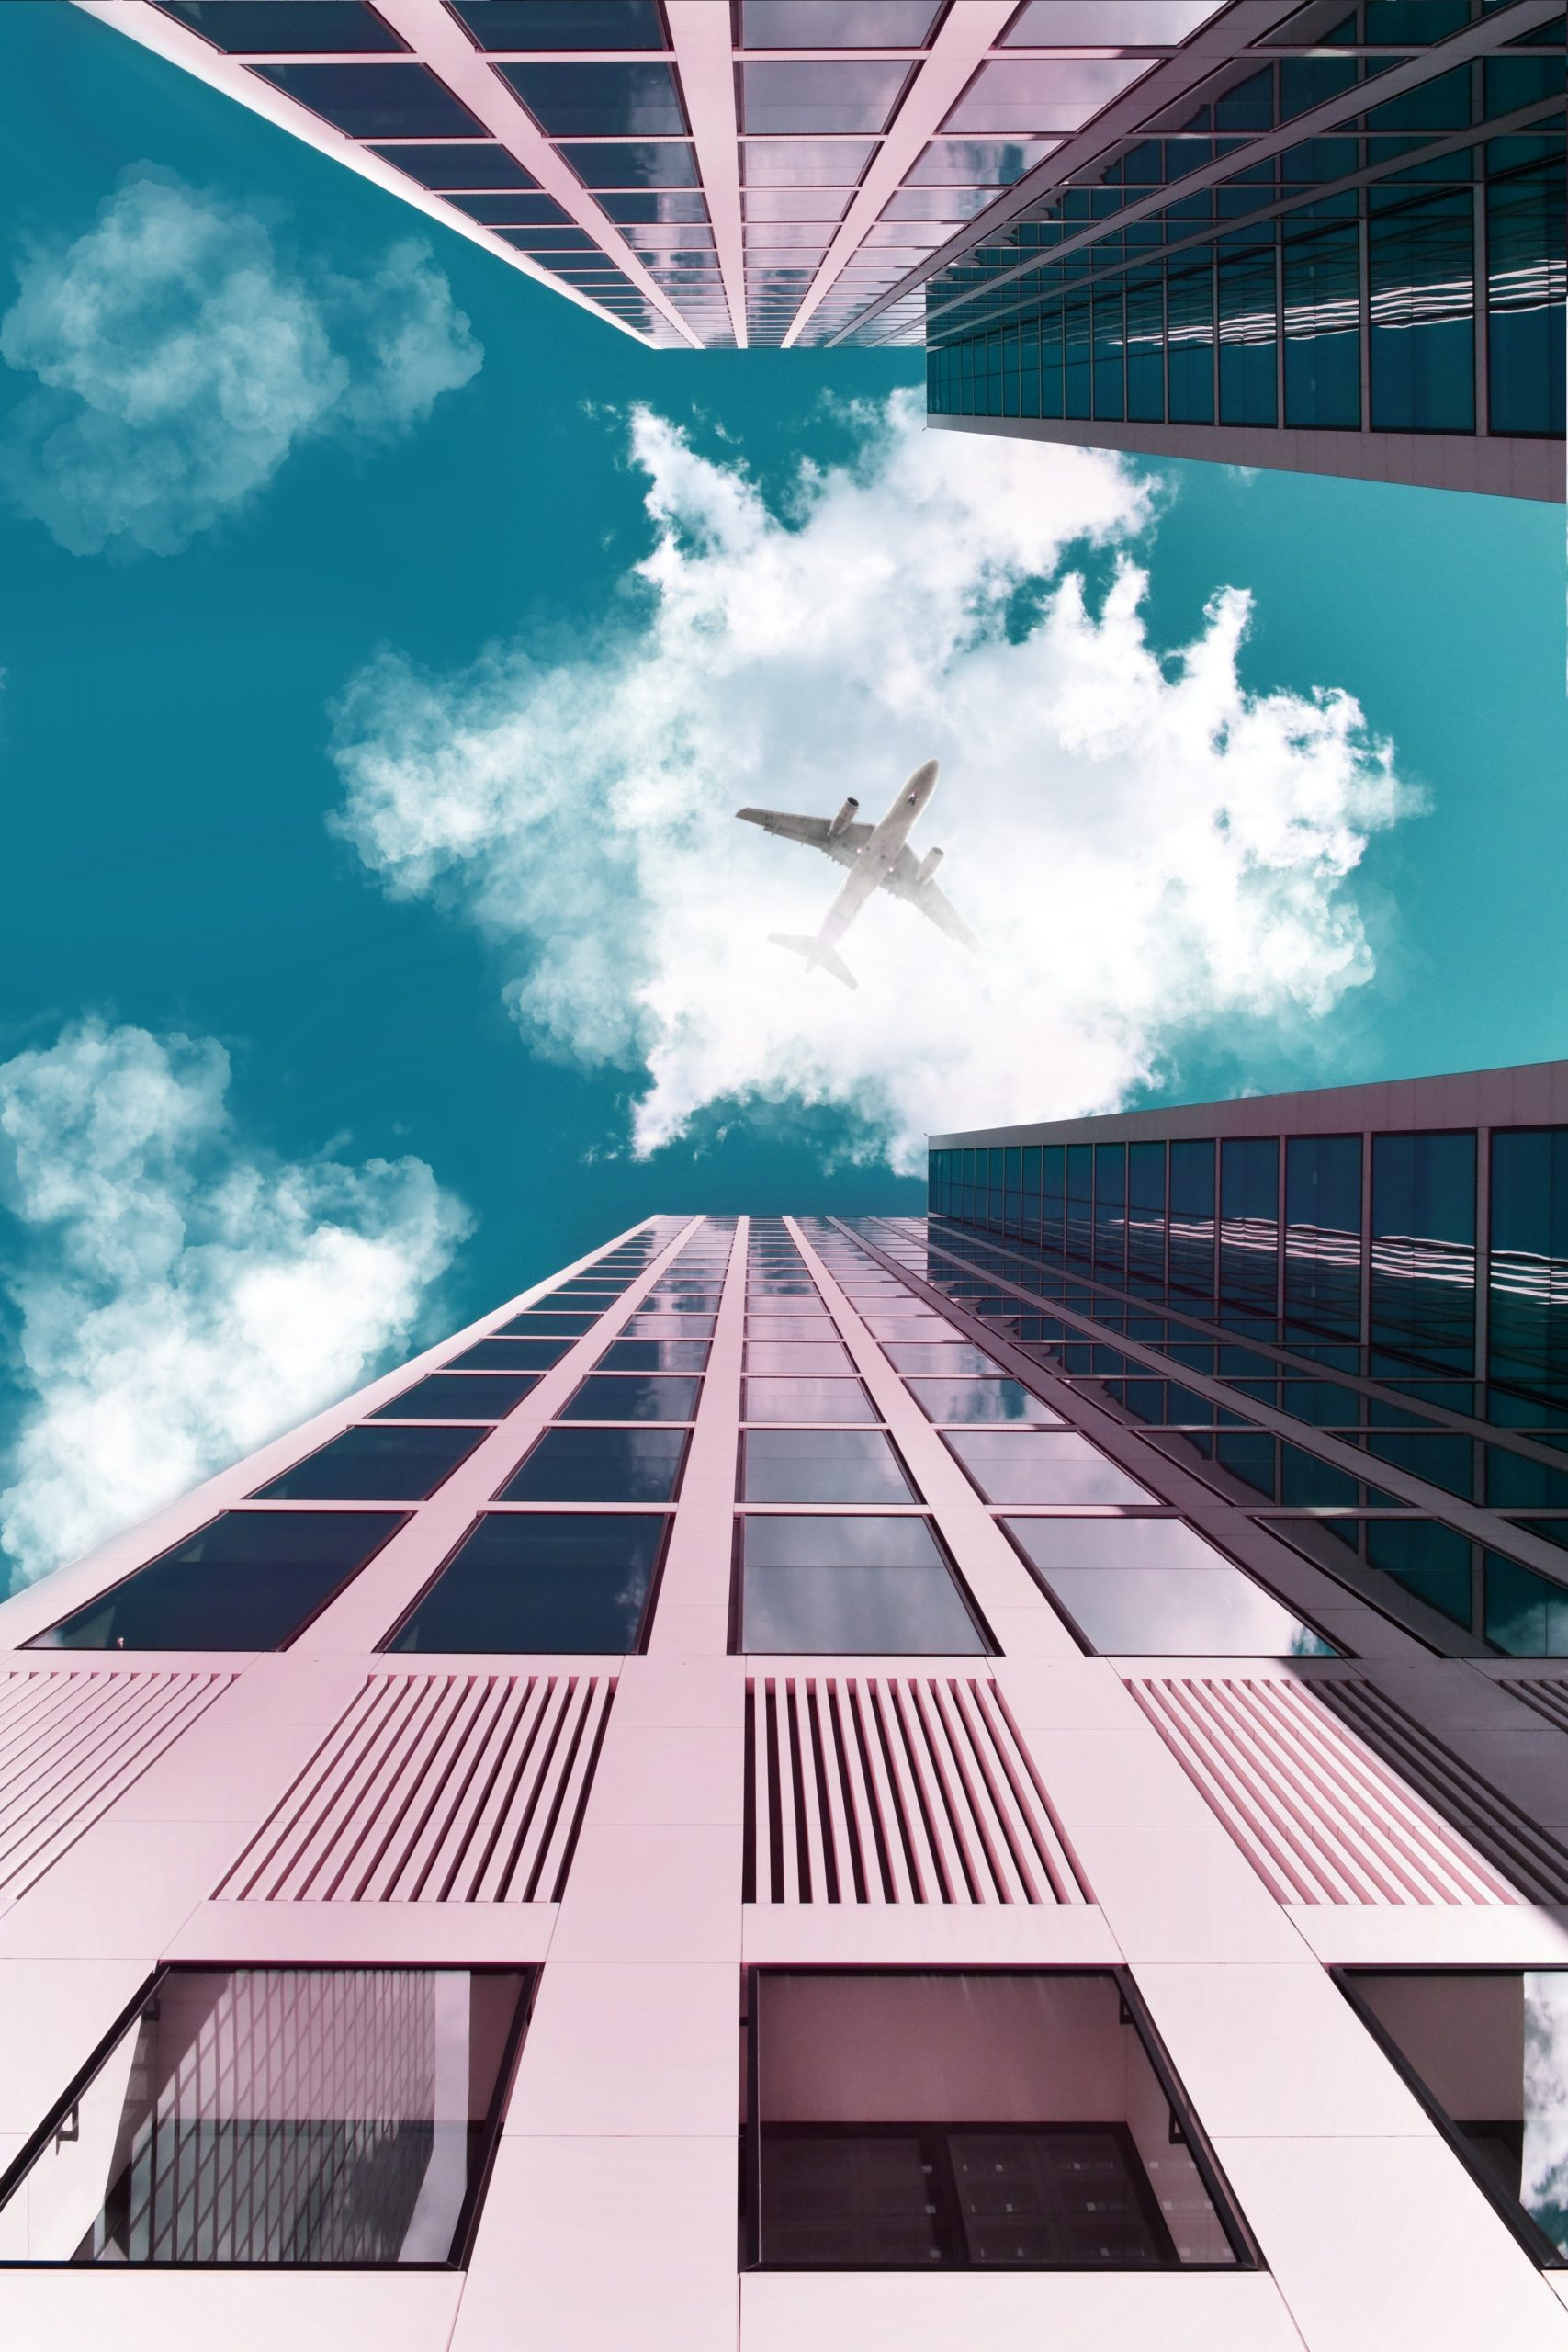 an-airplane-flying-over-the-buildings-2887976